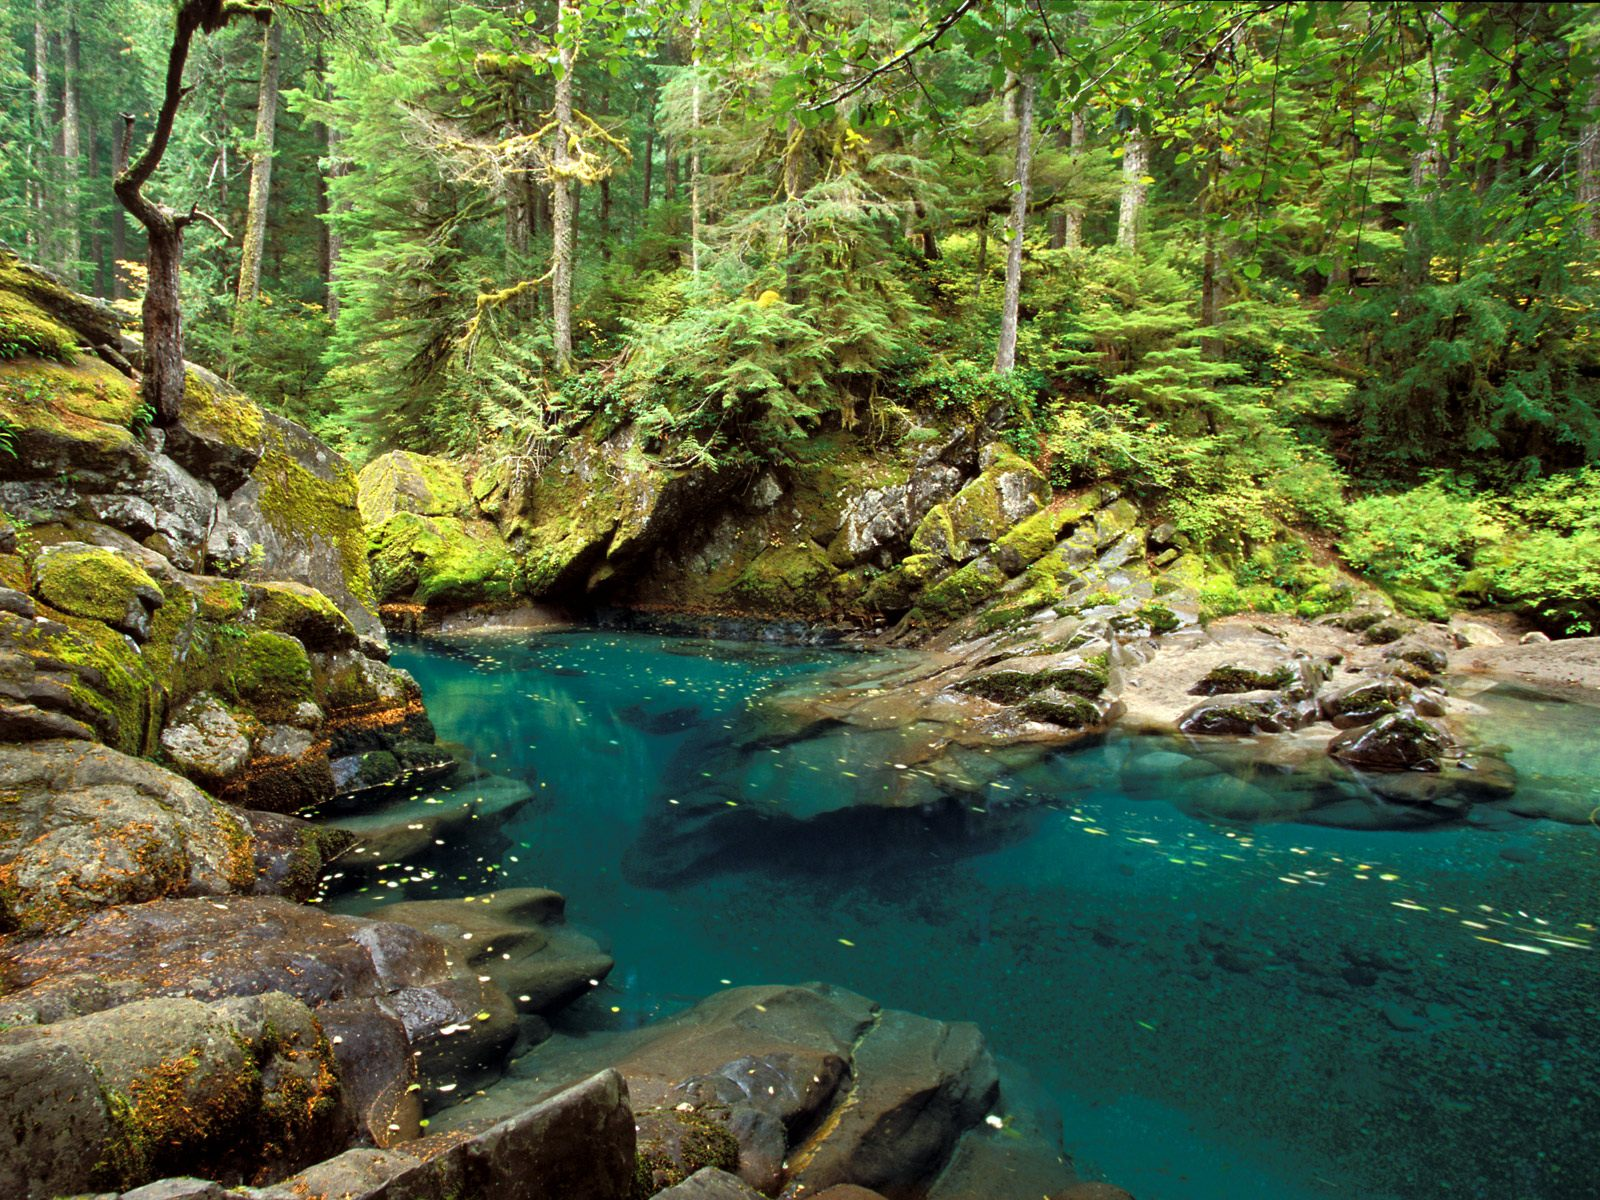 forest rivers images desktop widescreen free download